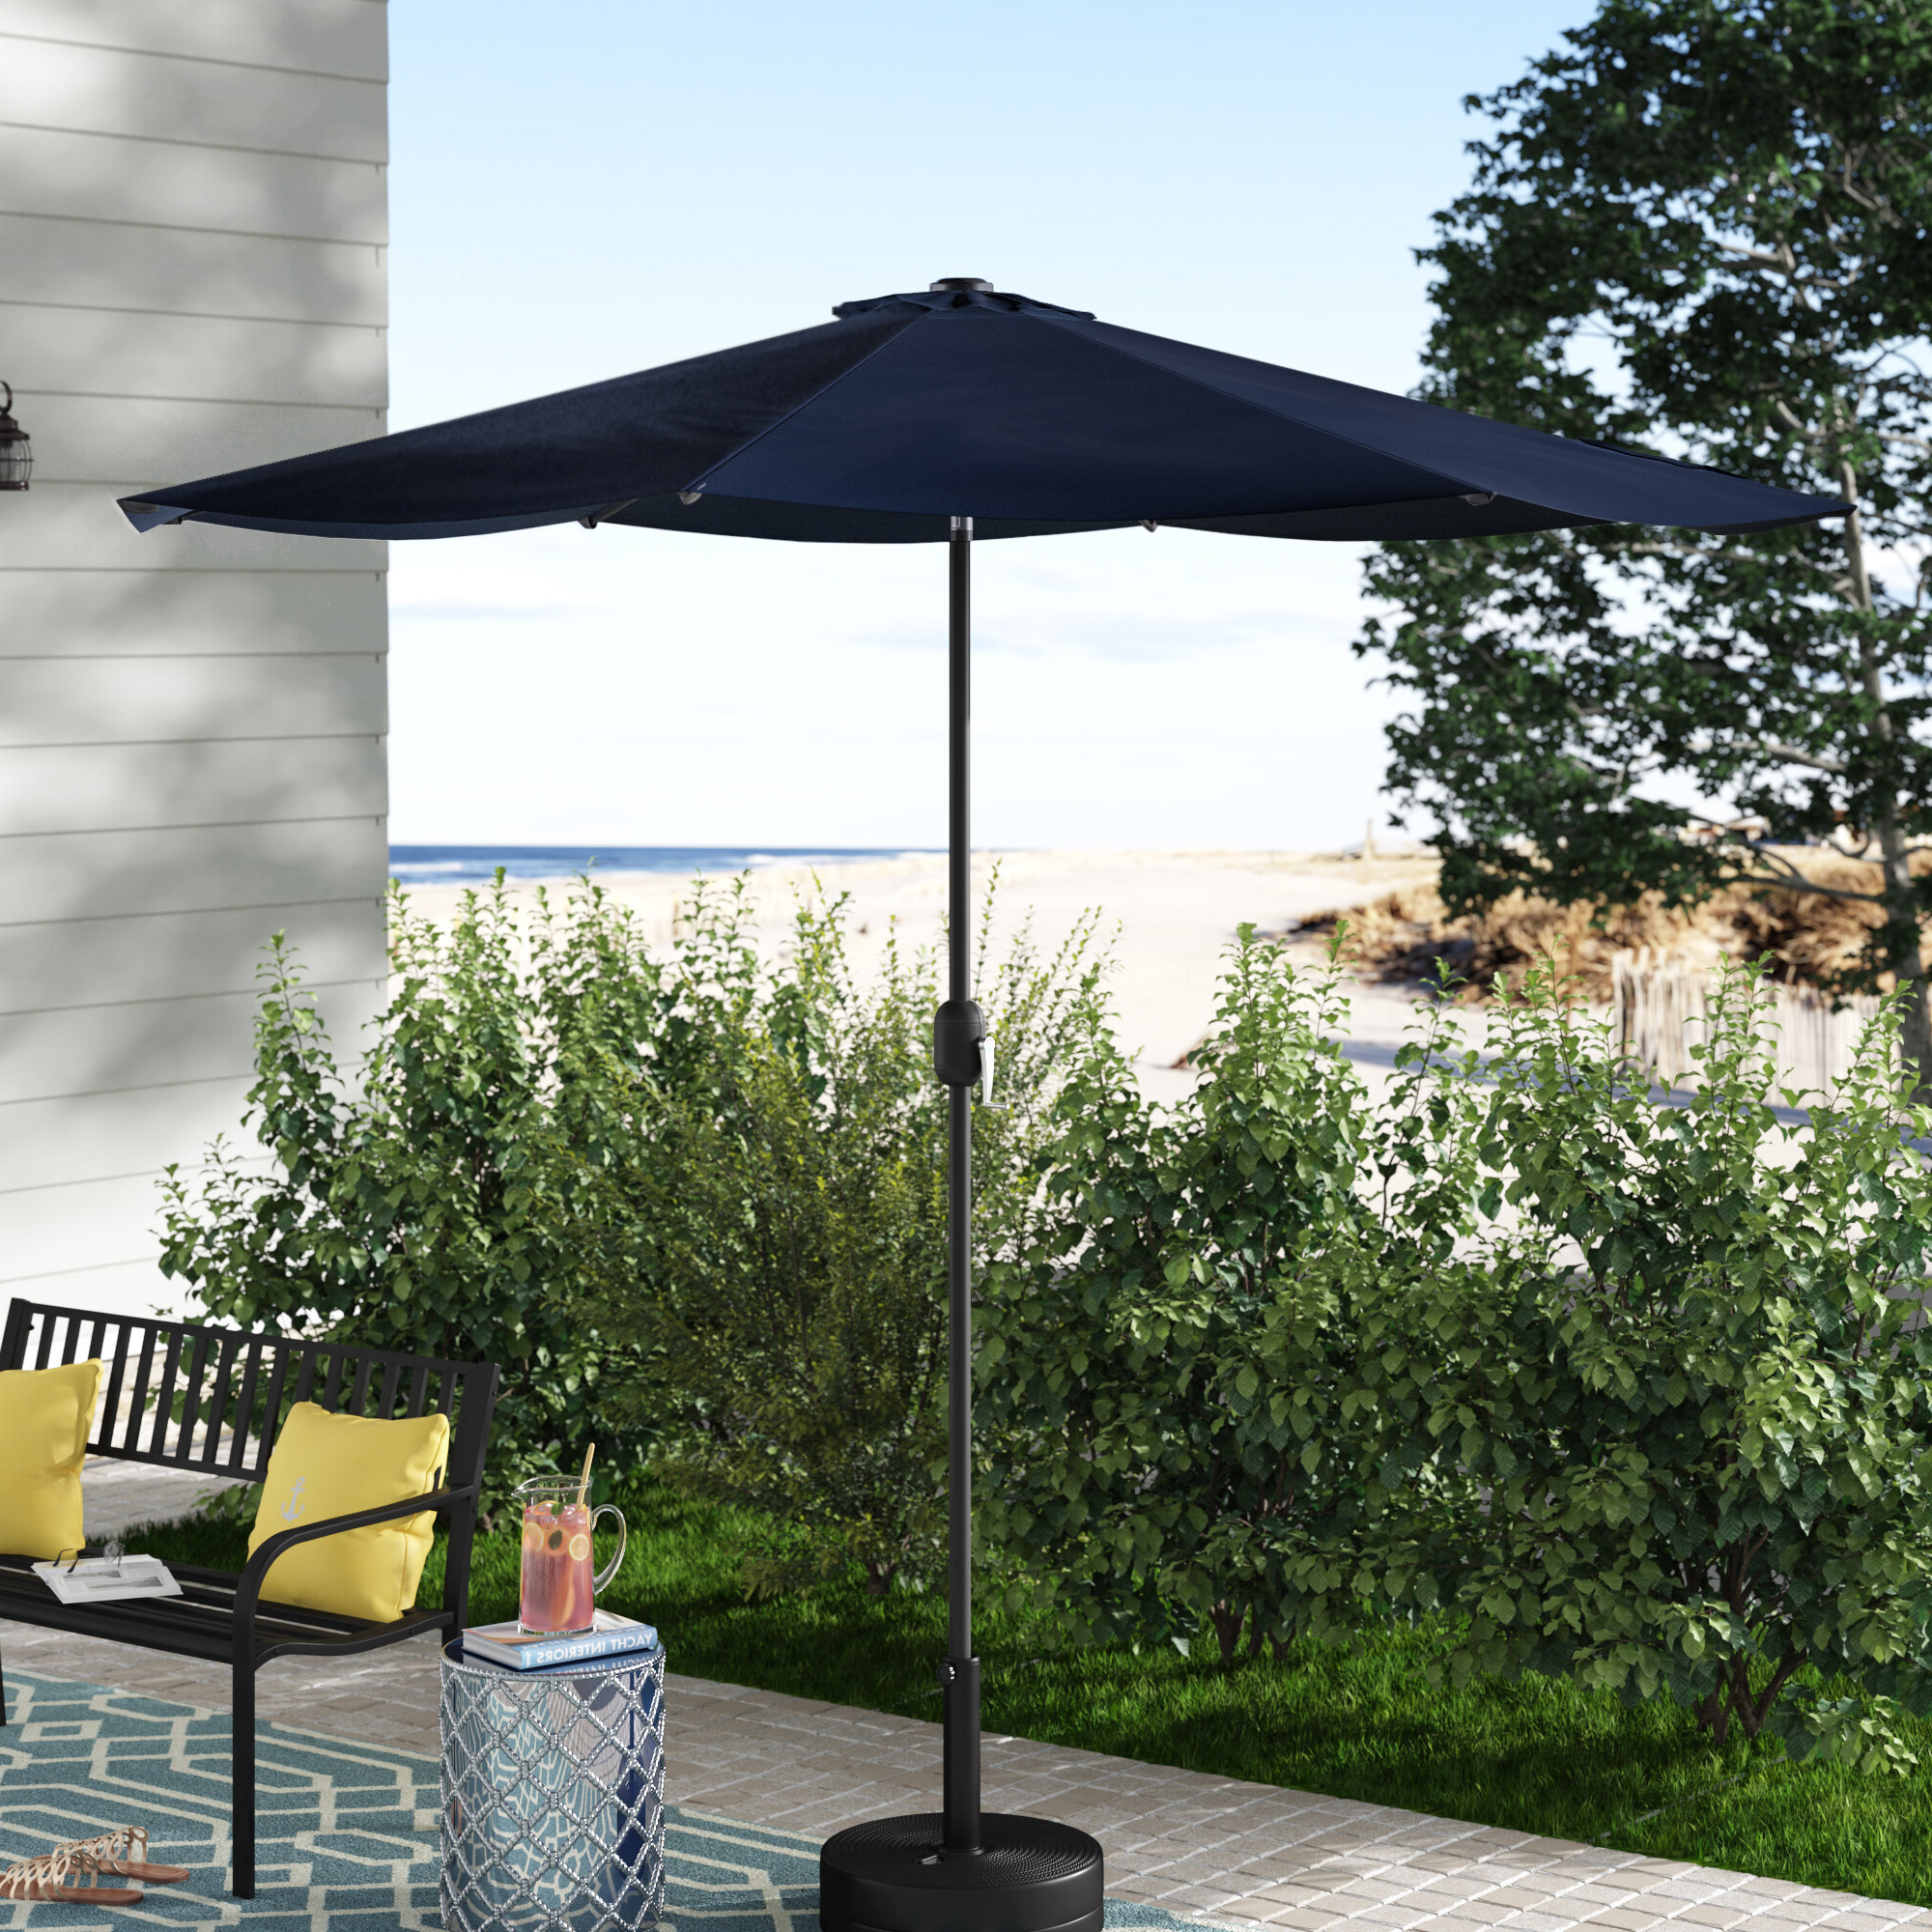 Julian 9' Market Sunbrella Umbrella Pertaining To Best And Newest Keltner Patio Outdoor Market Umbrellas (View 5 of 20)